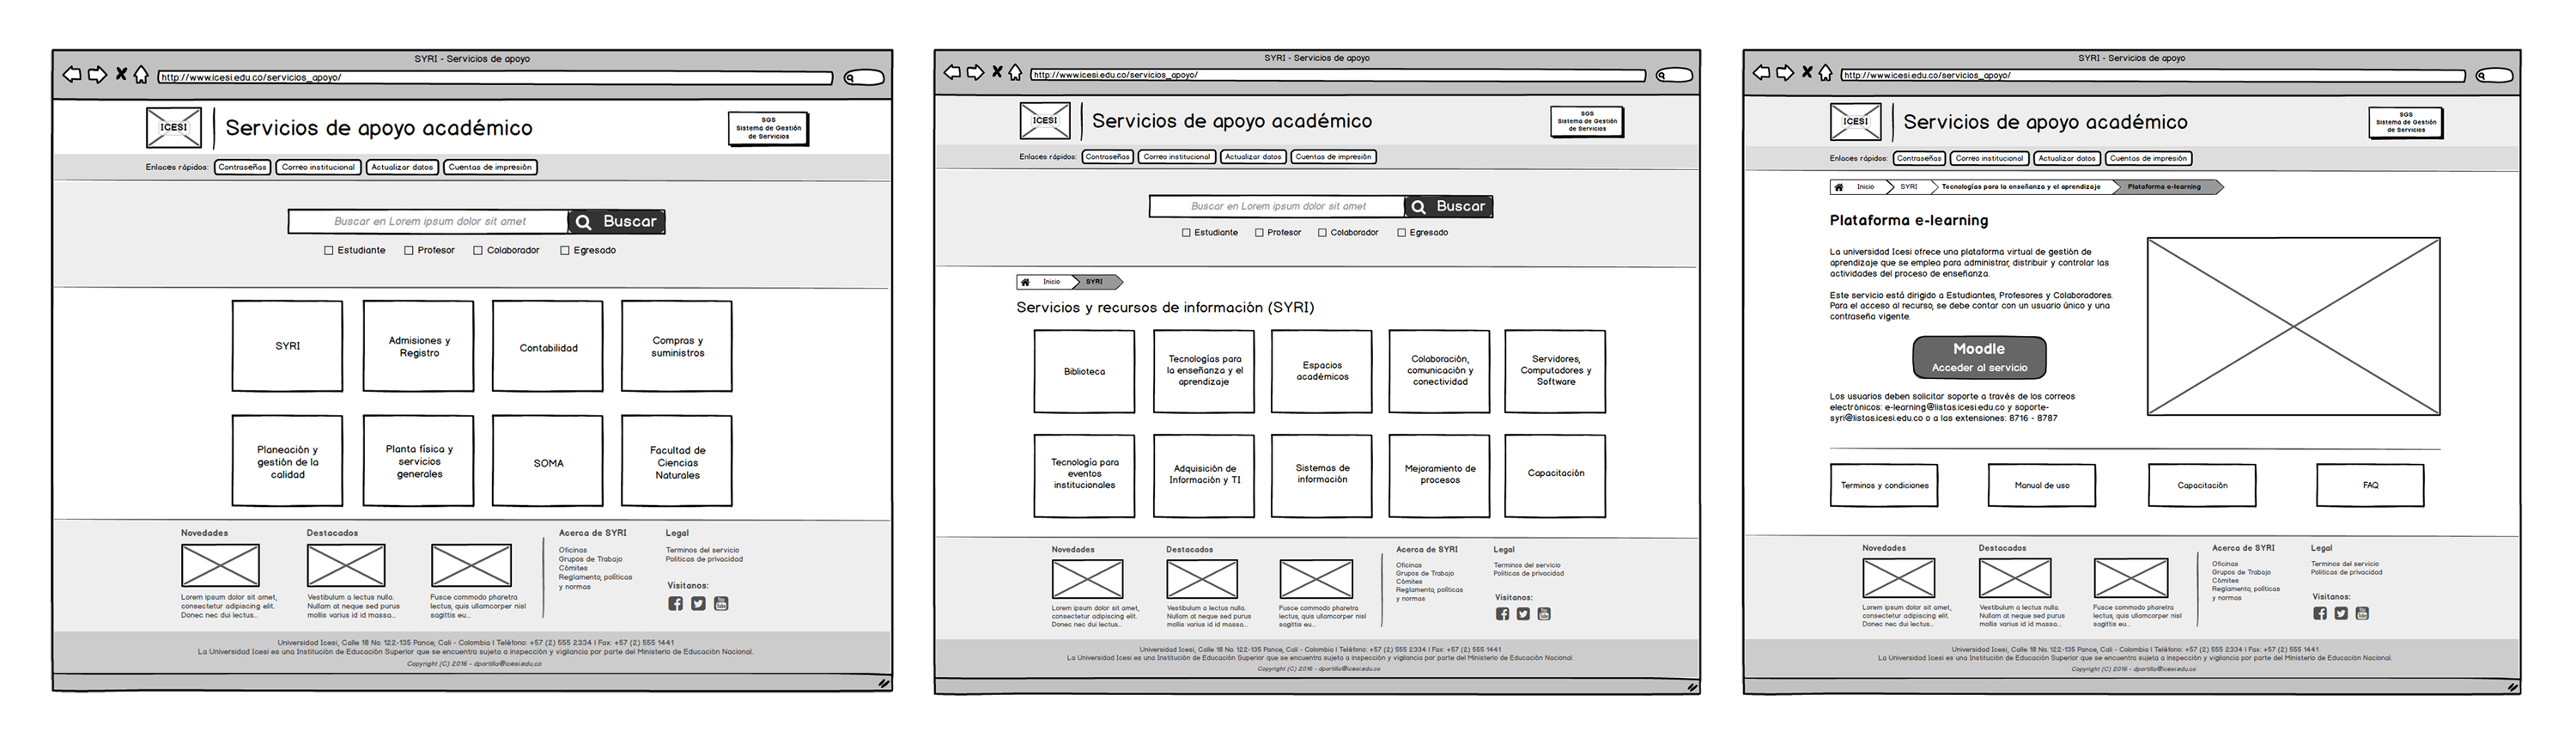 icesi-portal-of-services-wireframes-v1